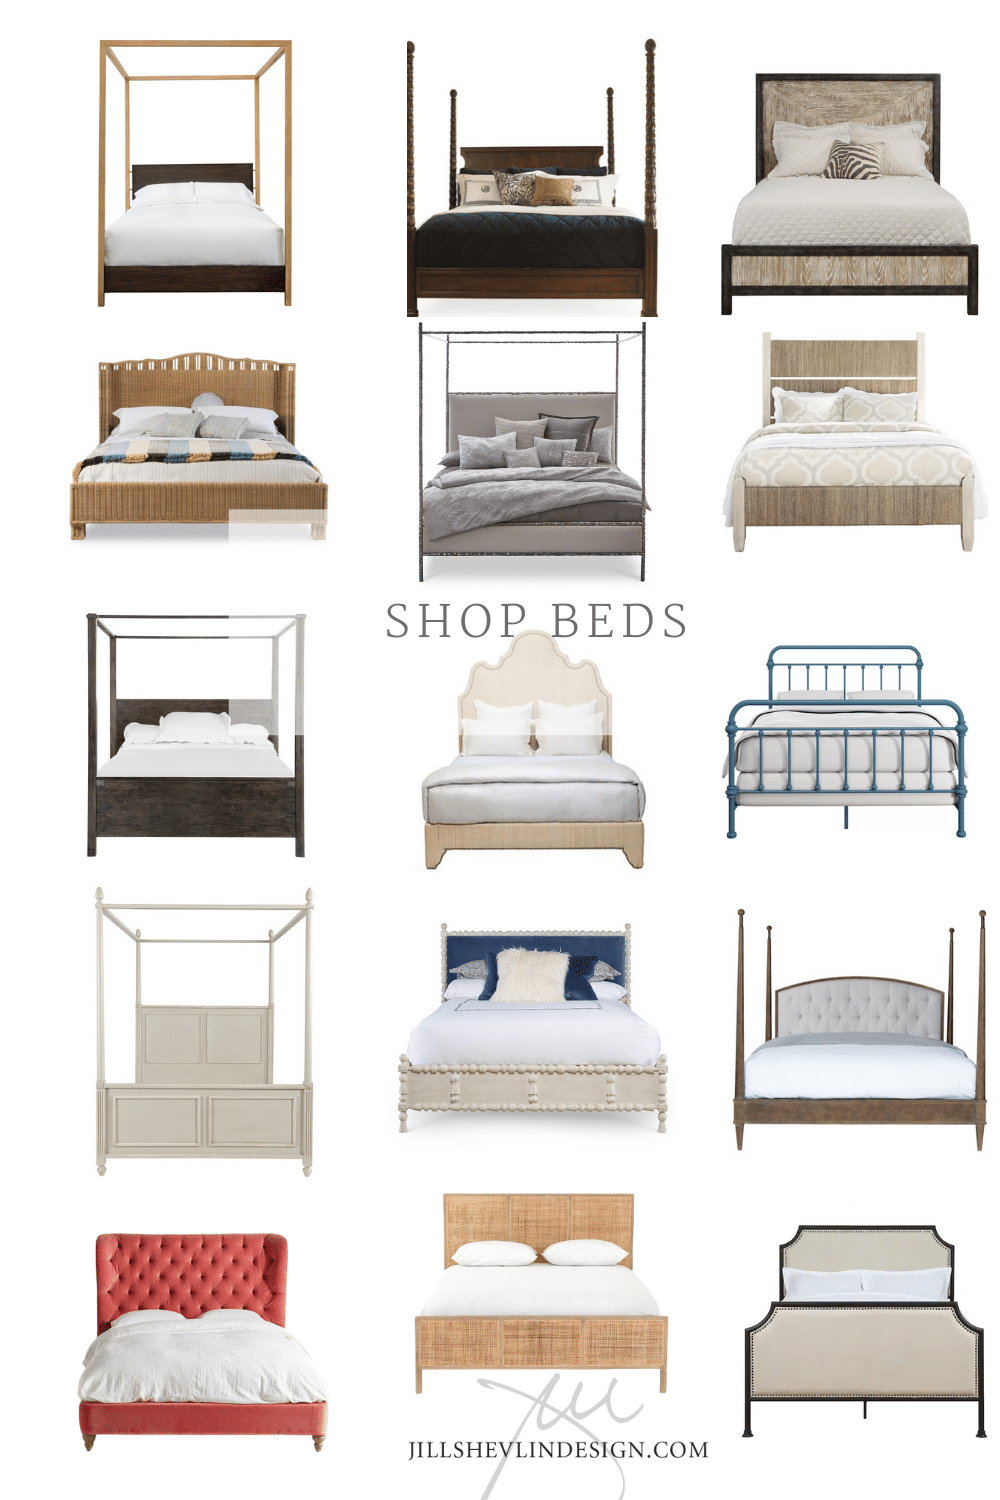 Beds Unique Beds for Every Style and Budget From Jill Shelvin Design